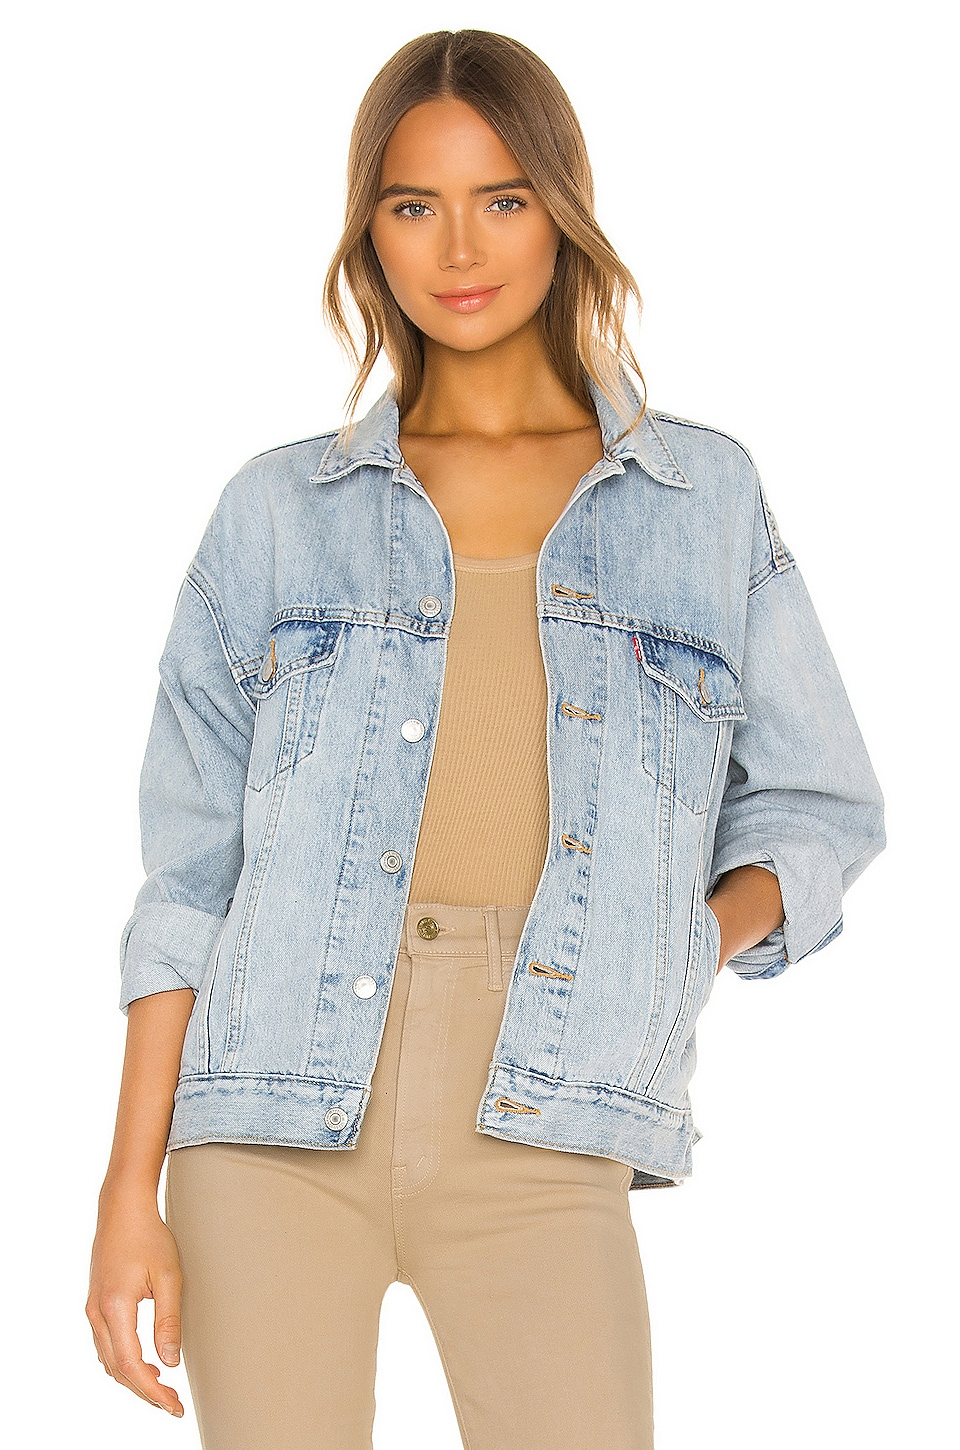 Dad Trucker Jacket             LEVI'S                                                                                                       CA$ 137.62 9